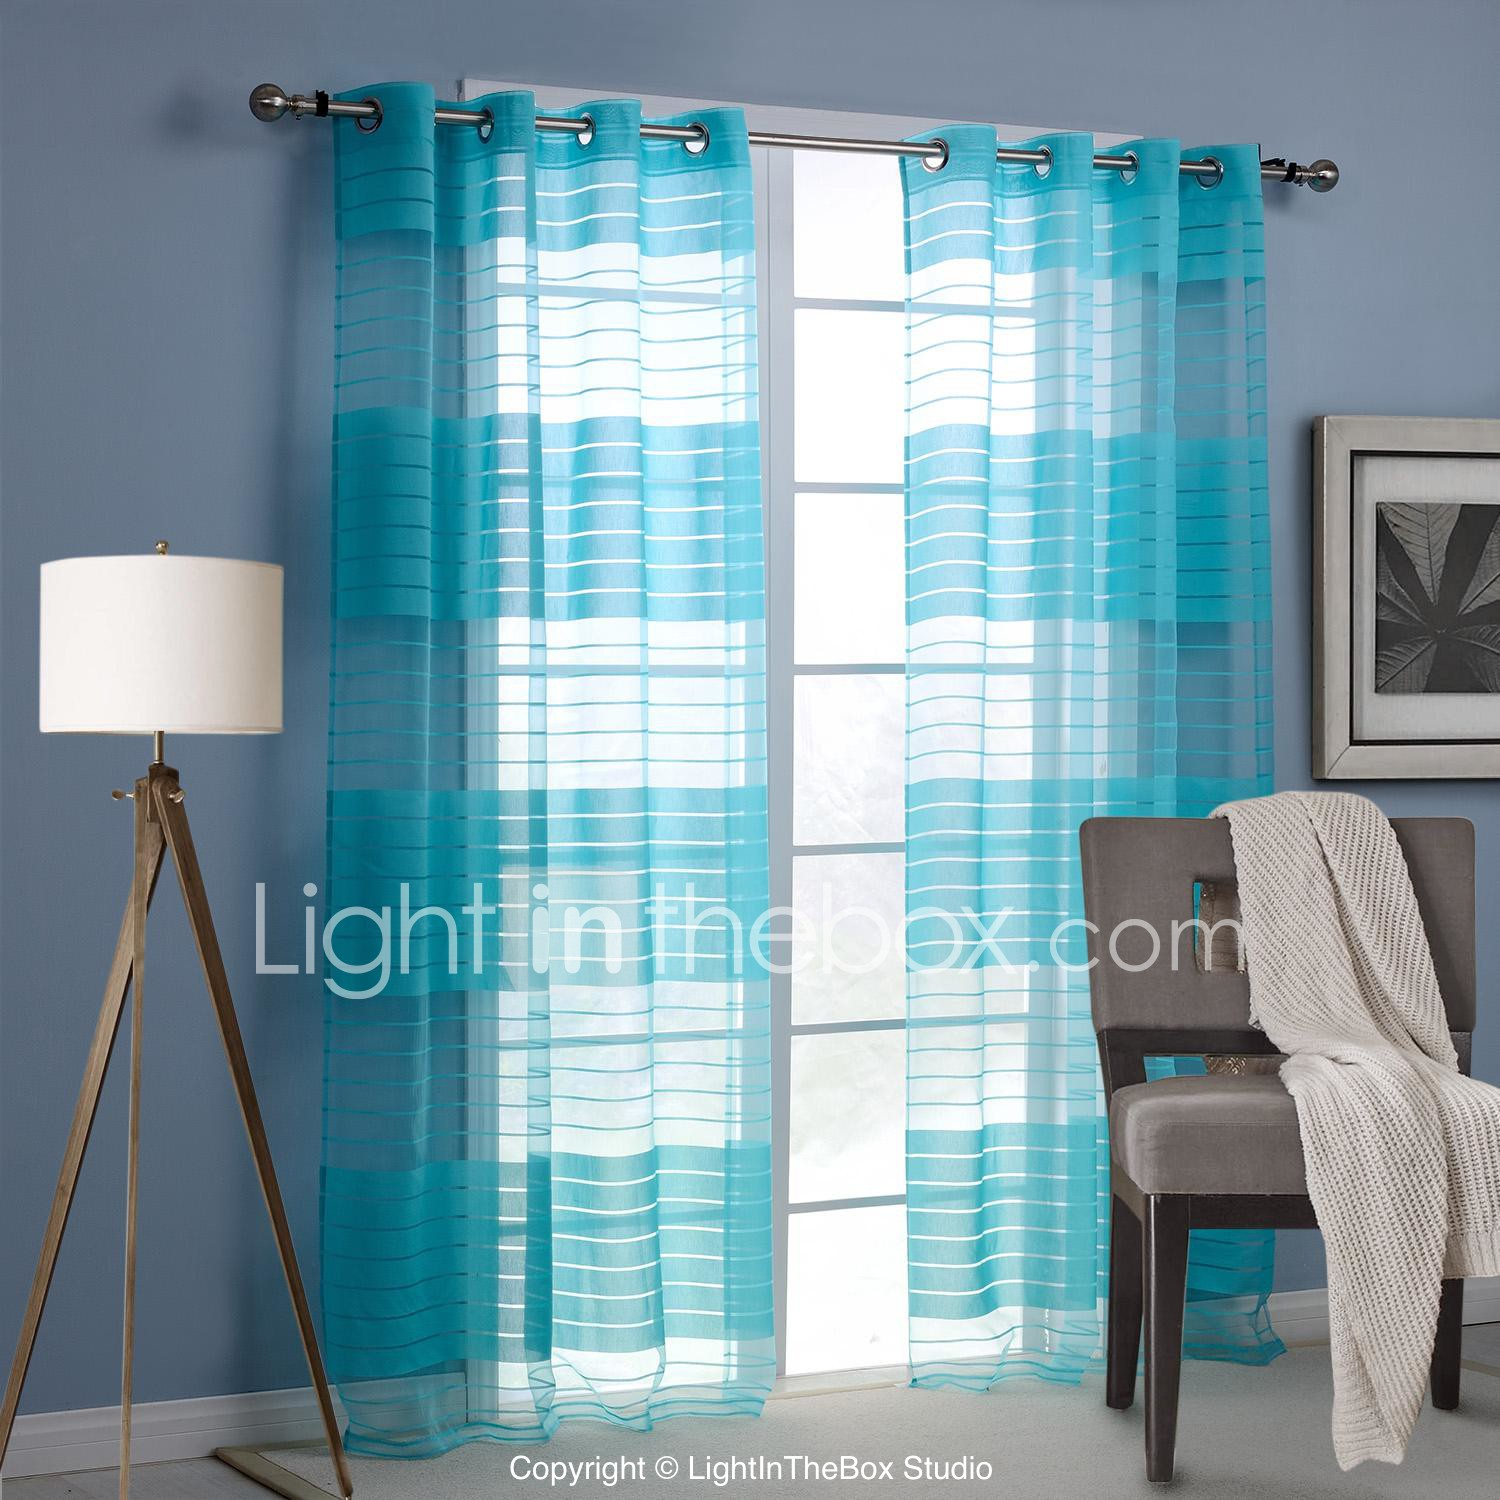 Modern living room curtains drapes - Modern One Panel Stripe Blue Living Room Rayon Panel Curtains Drapes 2654365 2017 26 09